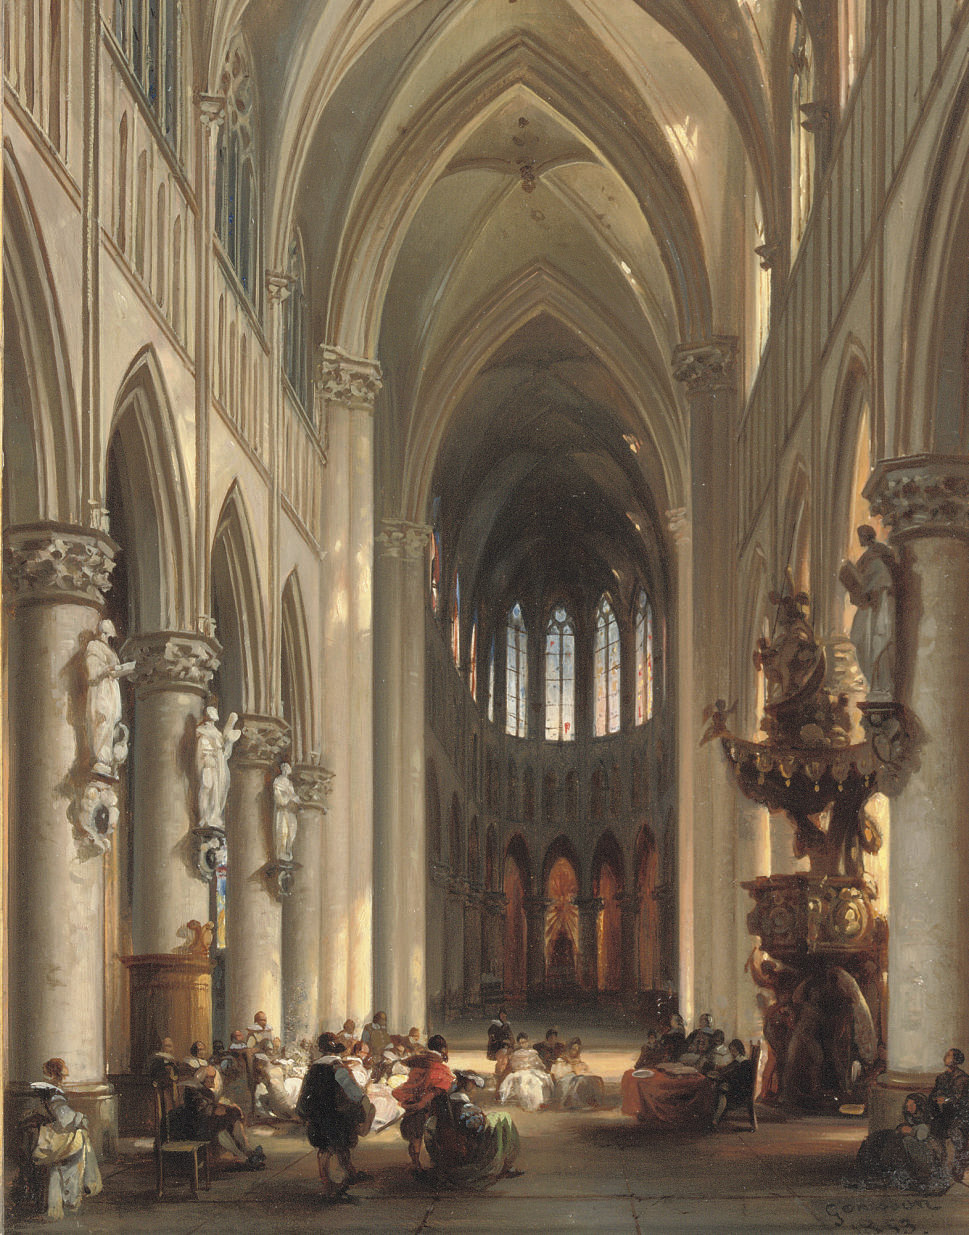 A gathering in a sunlit church